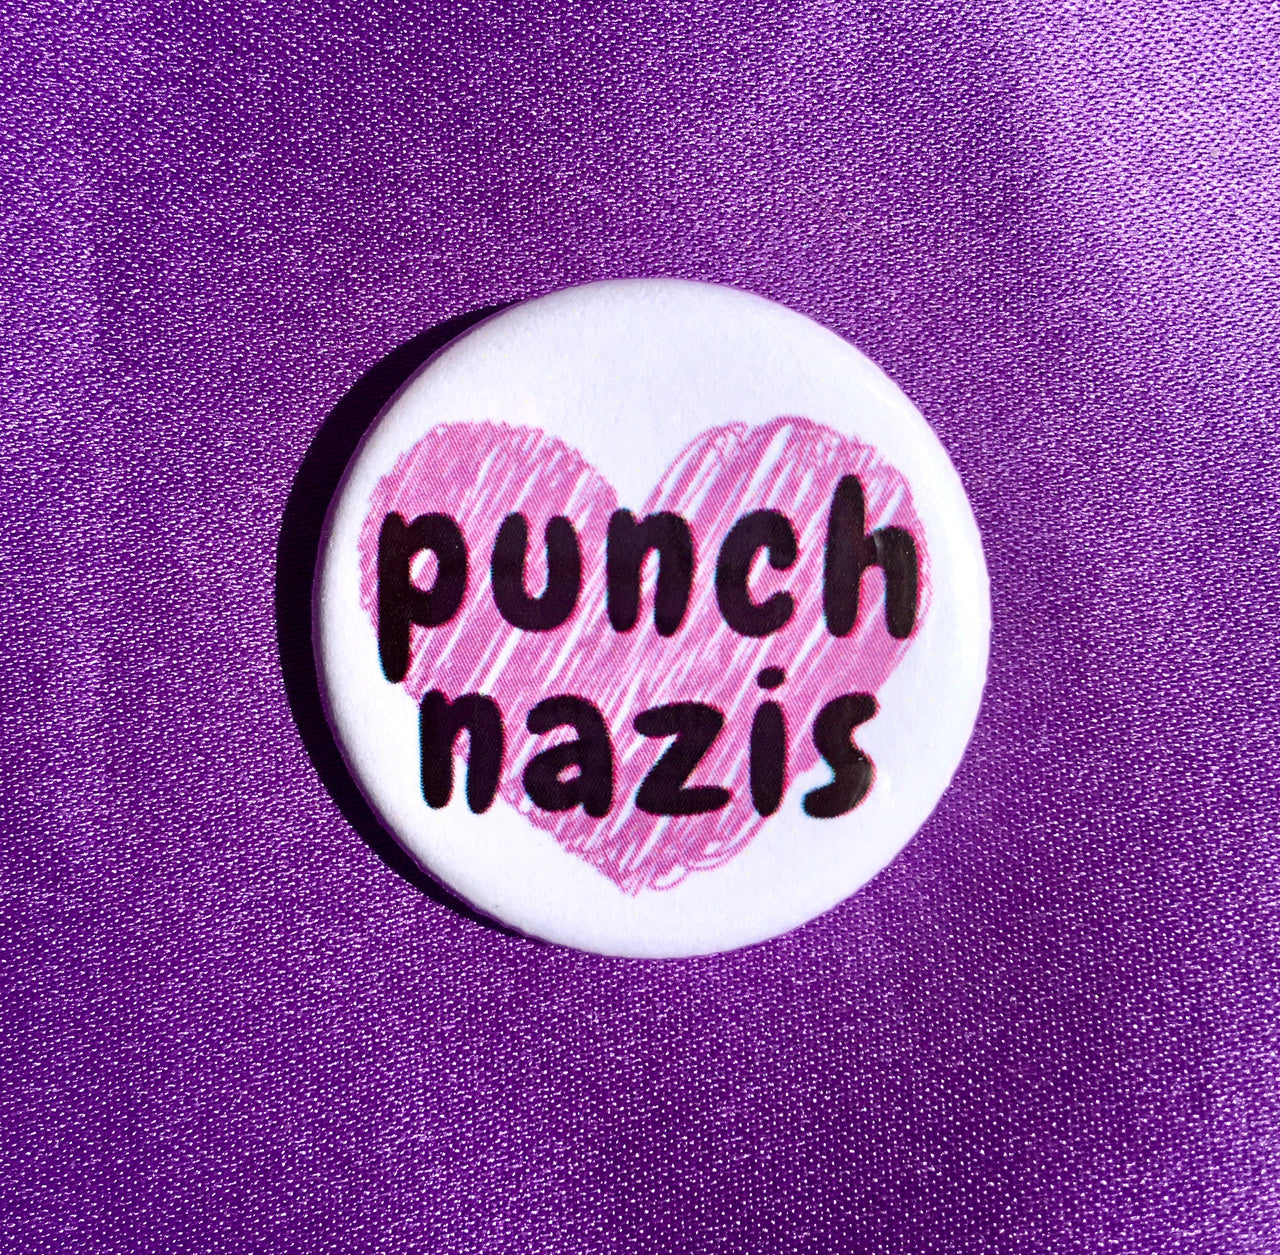 Punch Nazis - Radical Buttons